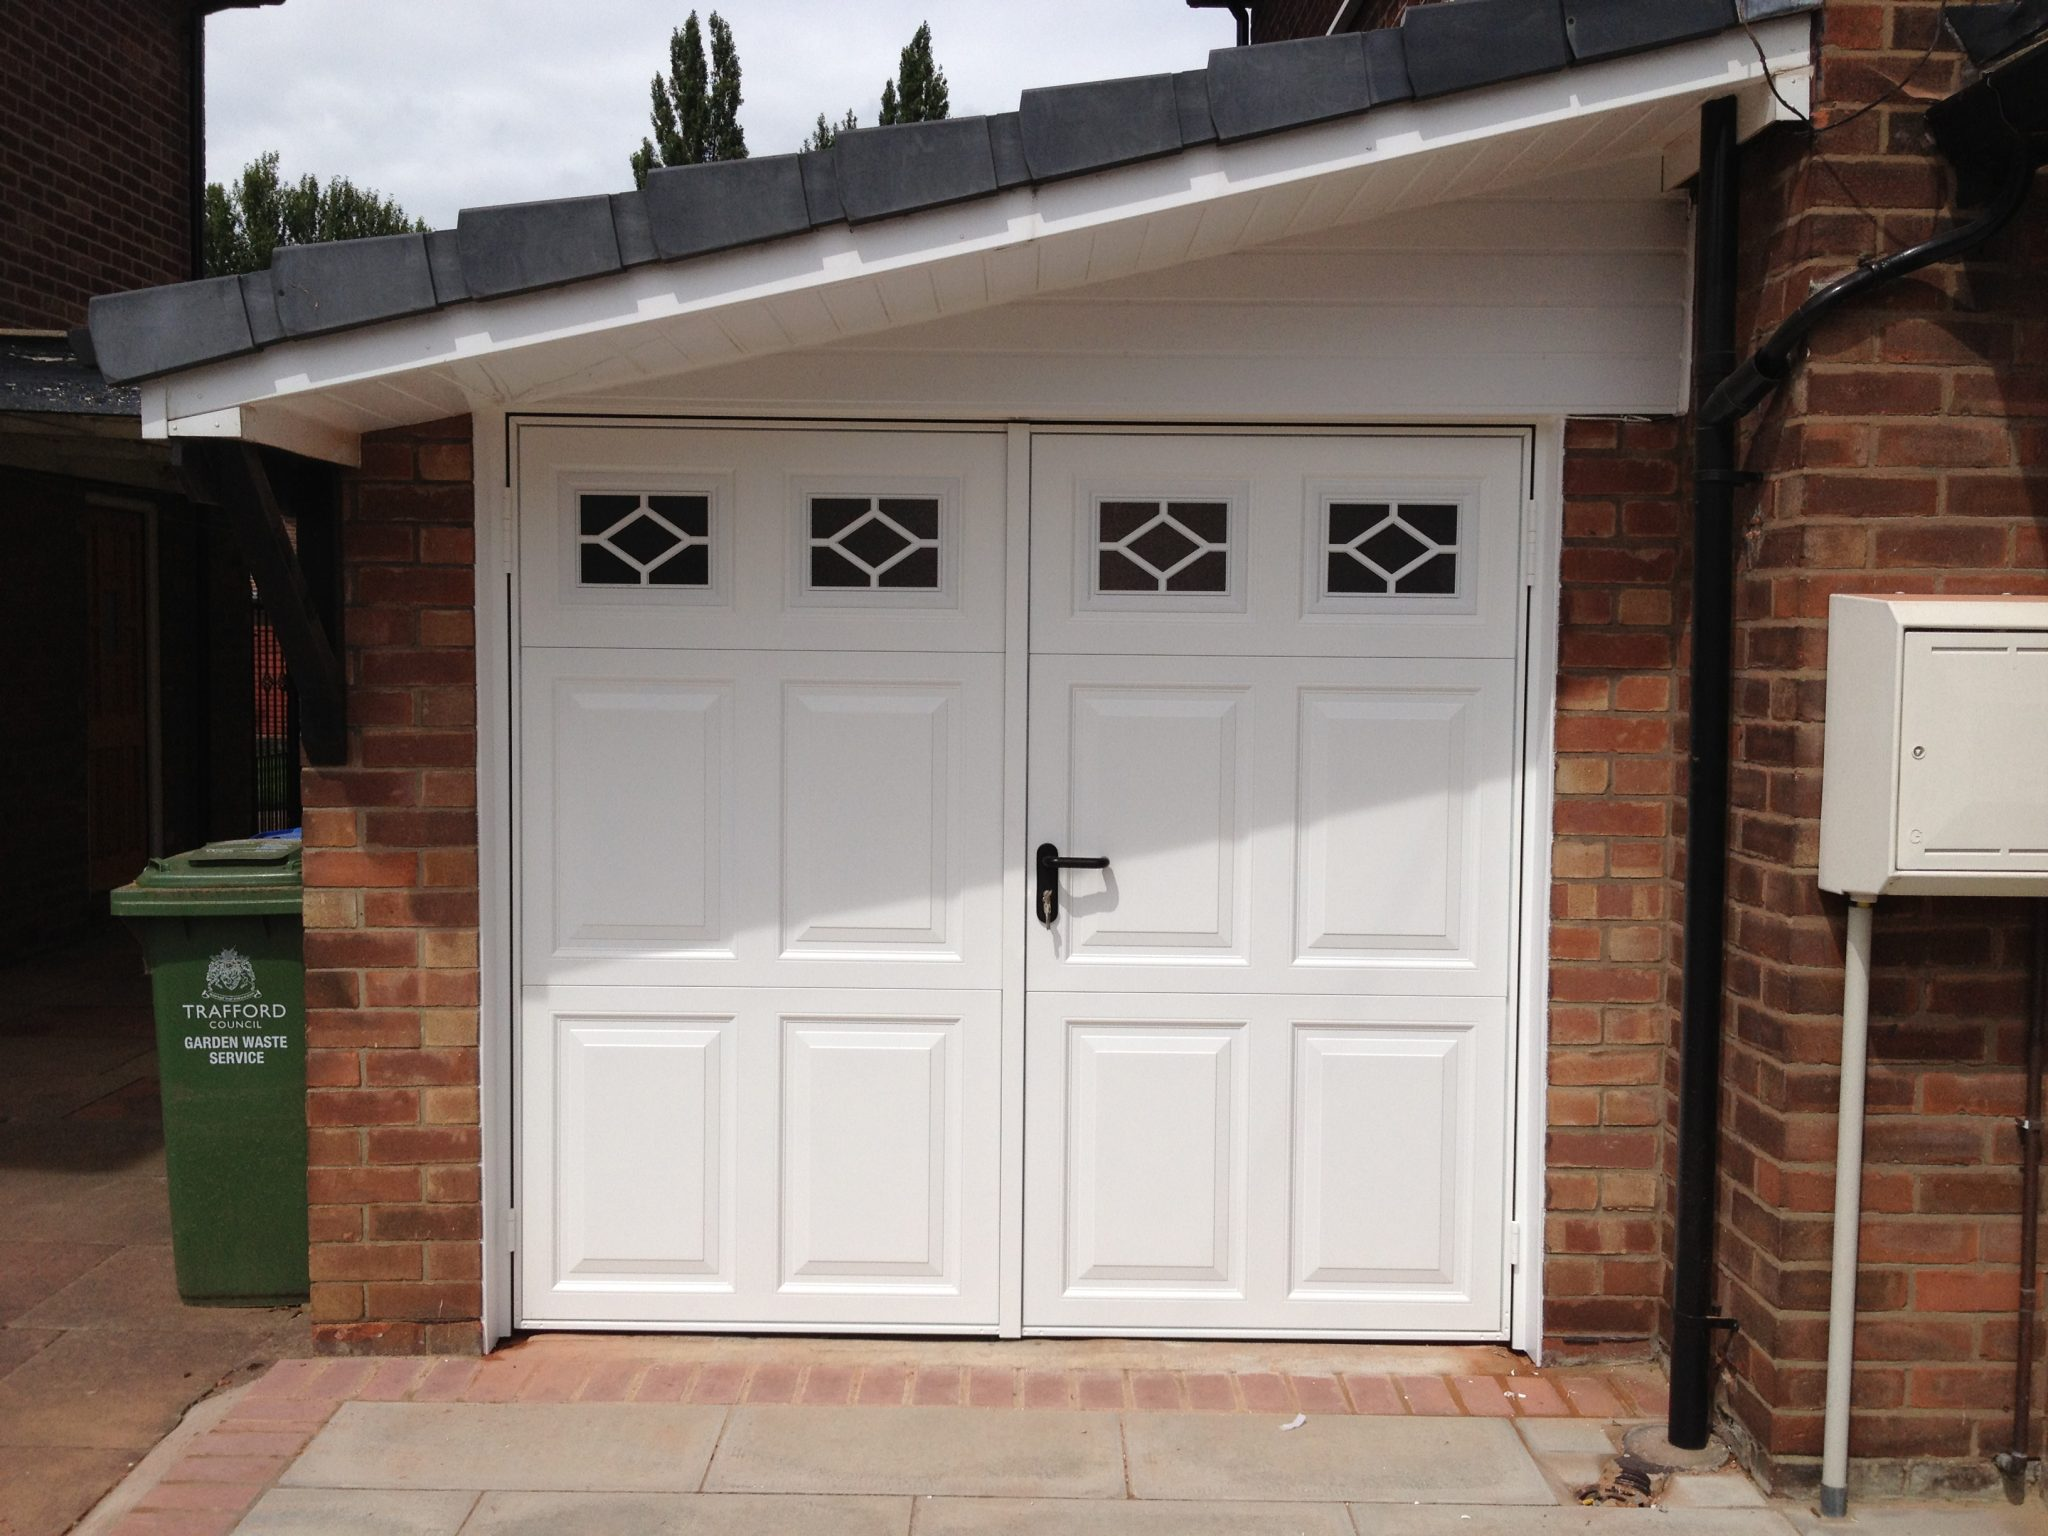 Cbl Are Proud Suppliers Of Garage Door Customers In The